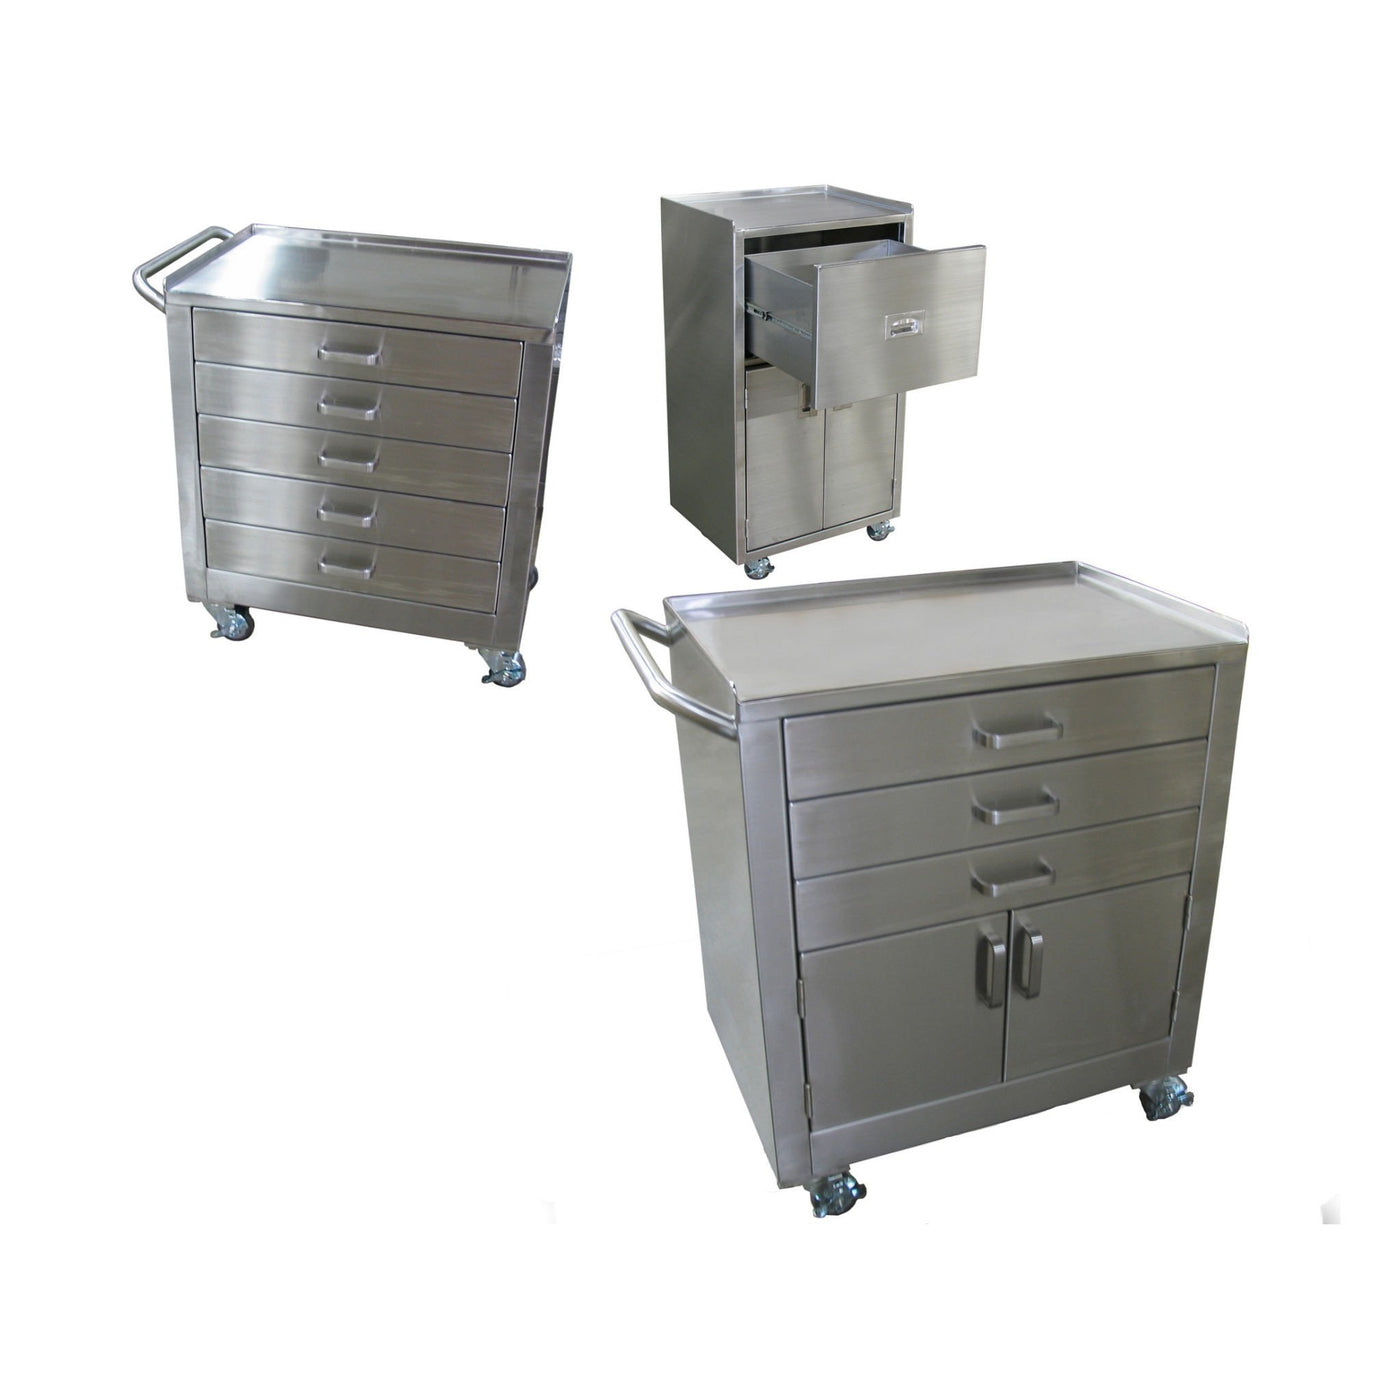 Mobile Utility Cabinets-Laboratory Accessory-Mortech Manufacturing Company Inc. Quality Stainless Steel Autopsy, Morgue, Funeral Home, Necropsy, Veterinary / Anatomy, Dissection Equipment and Accessories